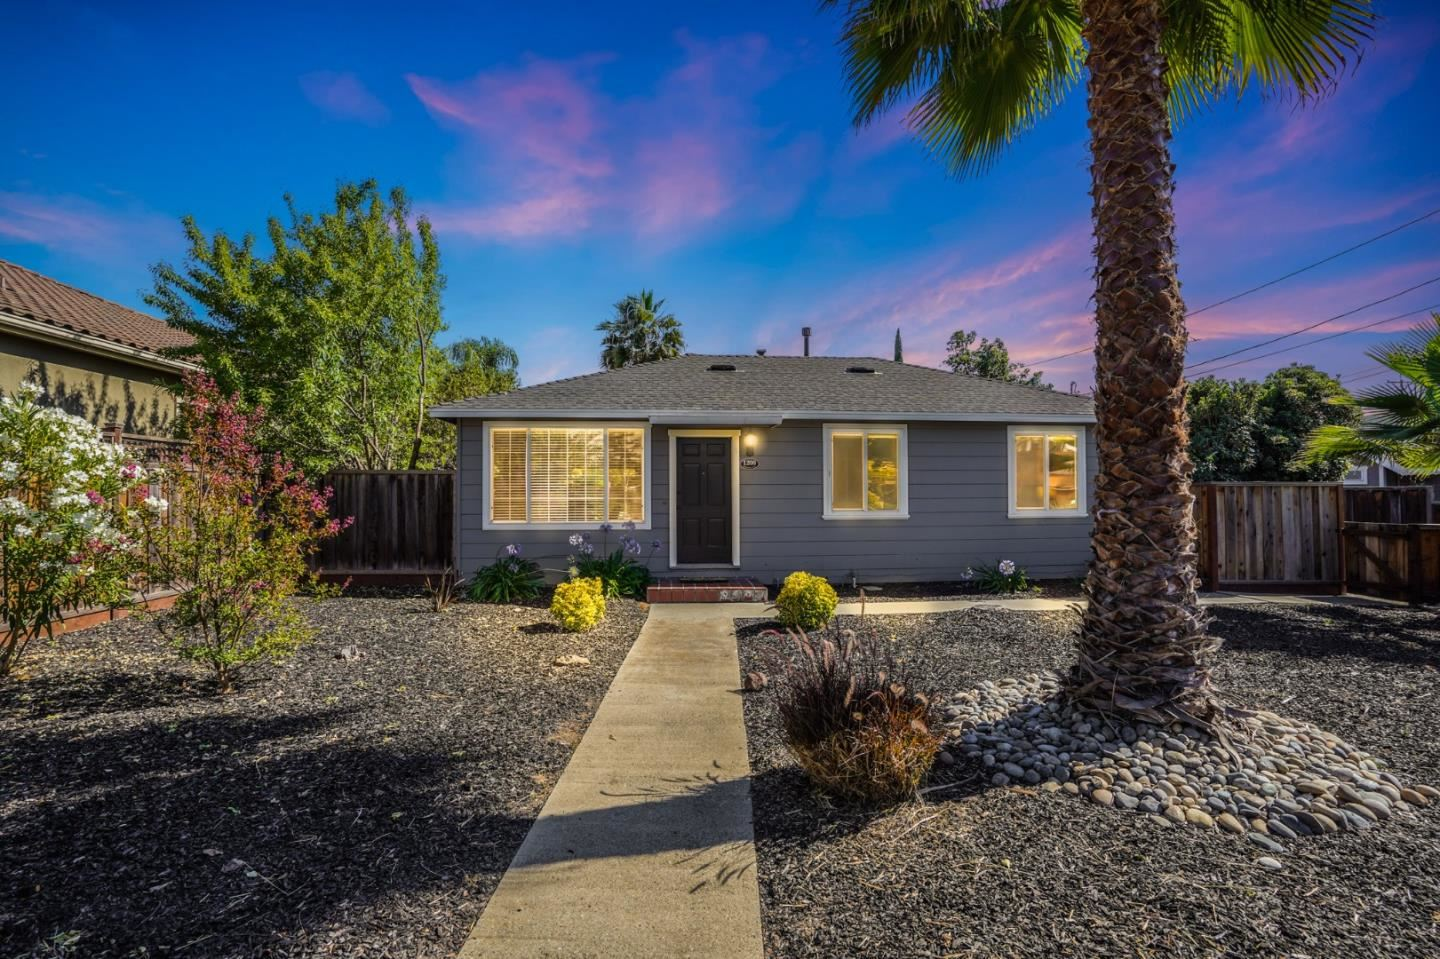 Photo for 1208-1210 Steinway Avenue, CAMPBELL, CA 95008 (MLS # ML81853180)